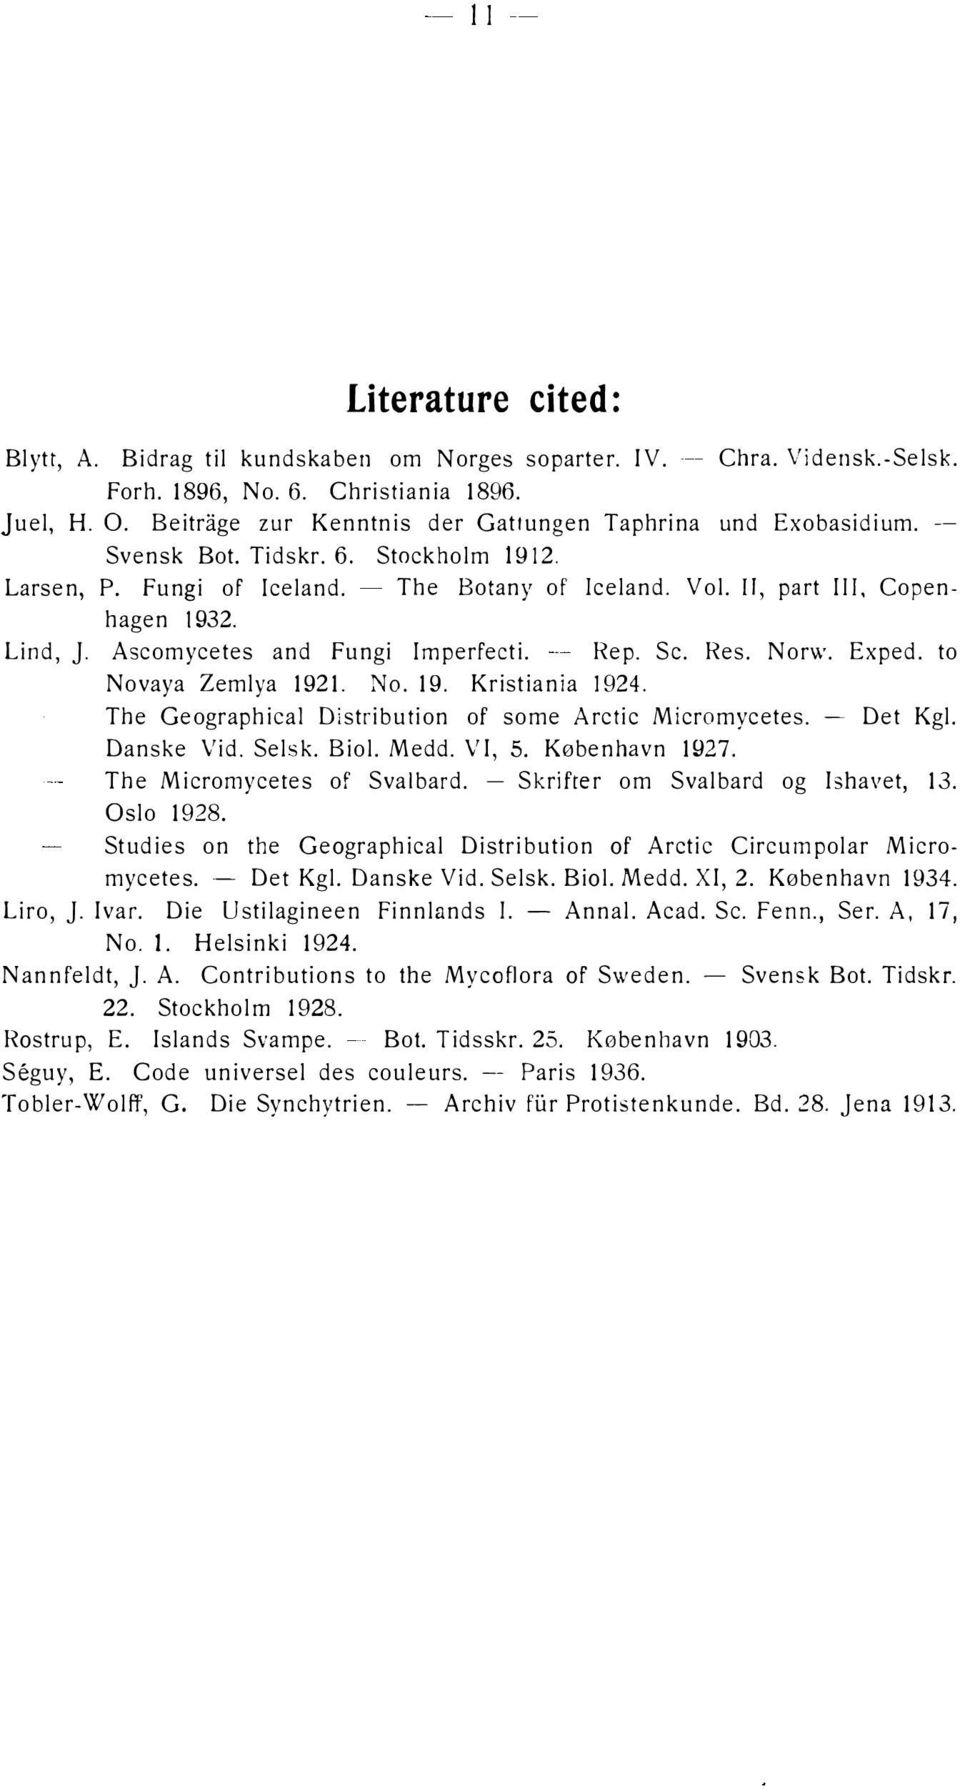 Ascomycetes and Fungi lmperfecti. Rep. Se. Res. Norn. Exped. to Novaya Zemlya 1921. No. 19. Kristiania 1924. The Geographical Distribution of some Arctic Micromycetes. - Det Kgl. Danske Vid. Selsk.